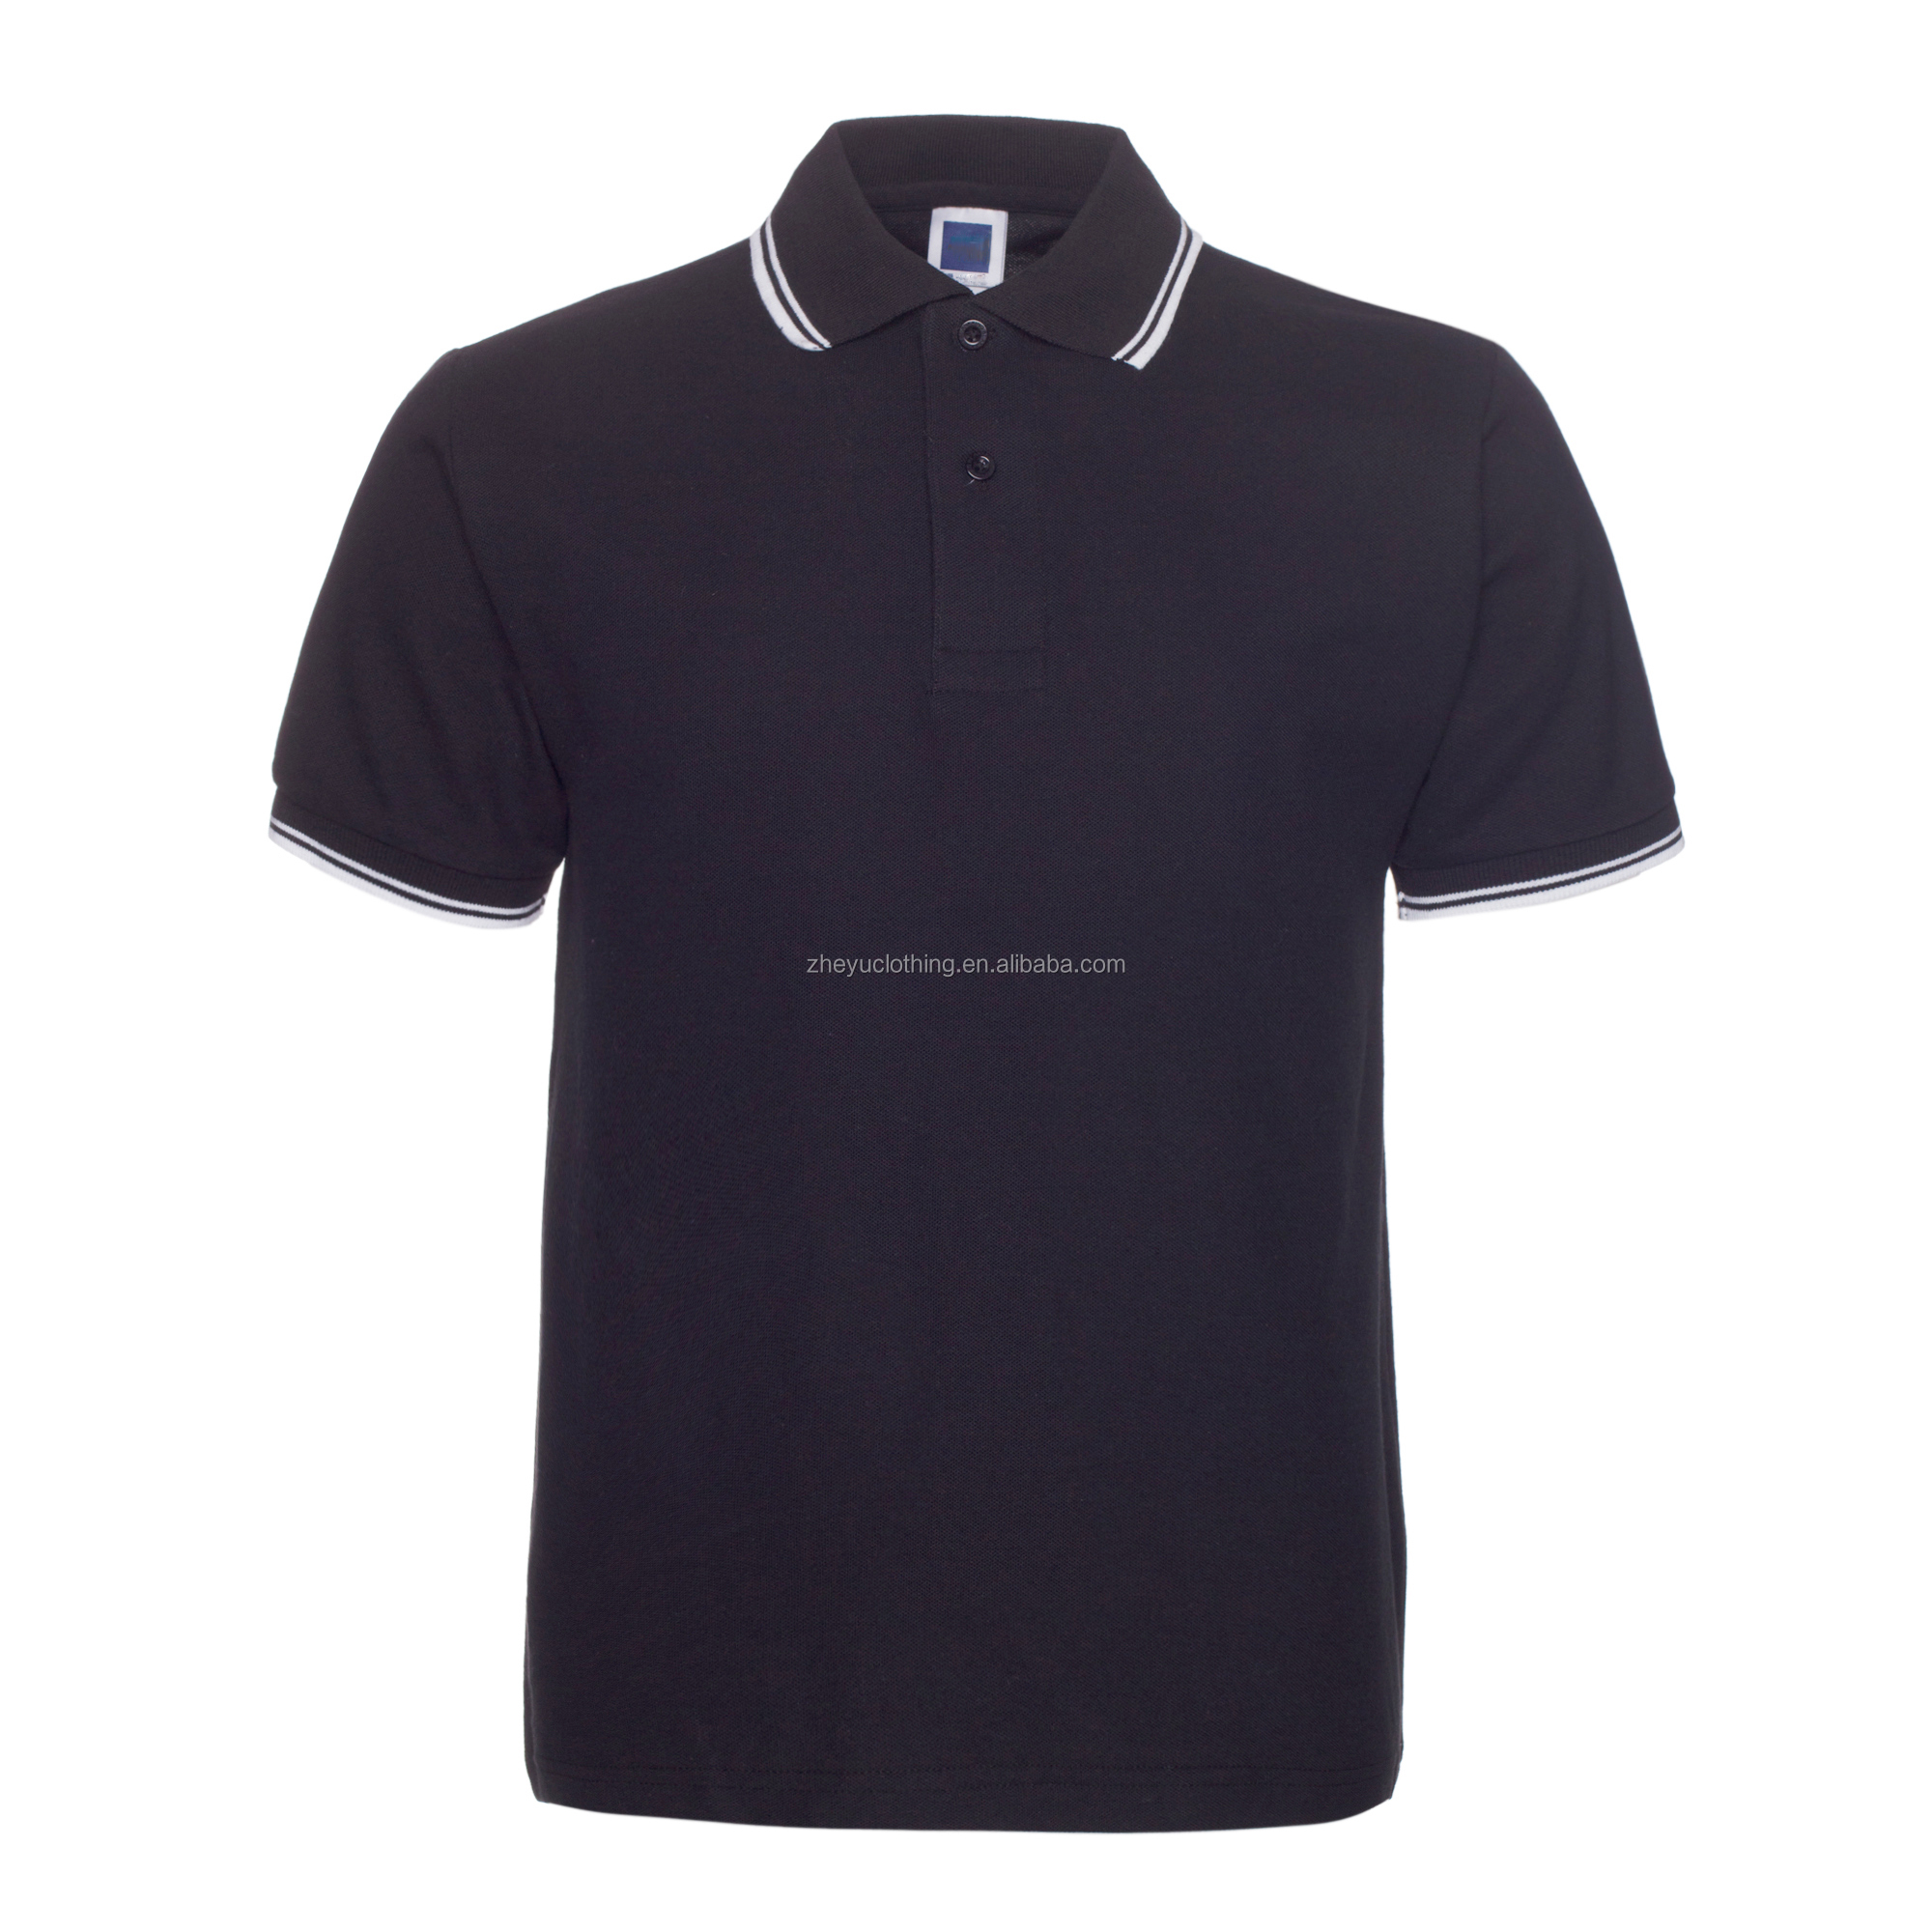 Men's cotton polo t shirt short sleeve black polo shirts with striped collar